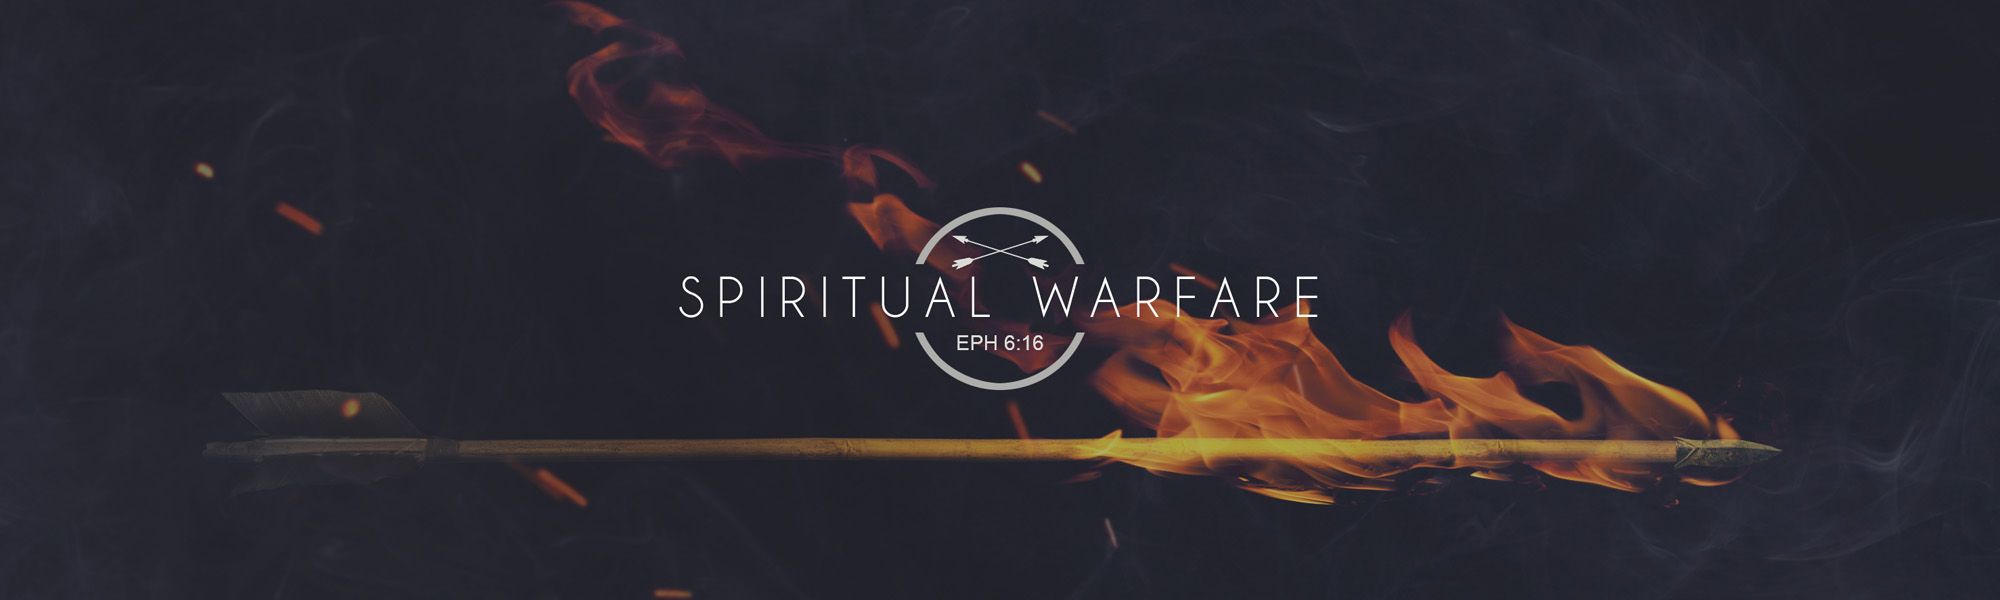 Header Design - Spiritual Warfare.jpg